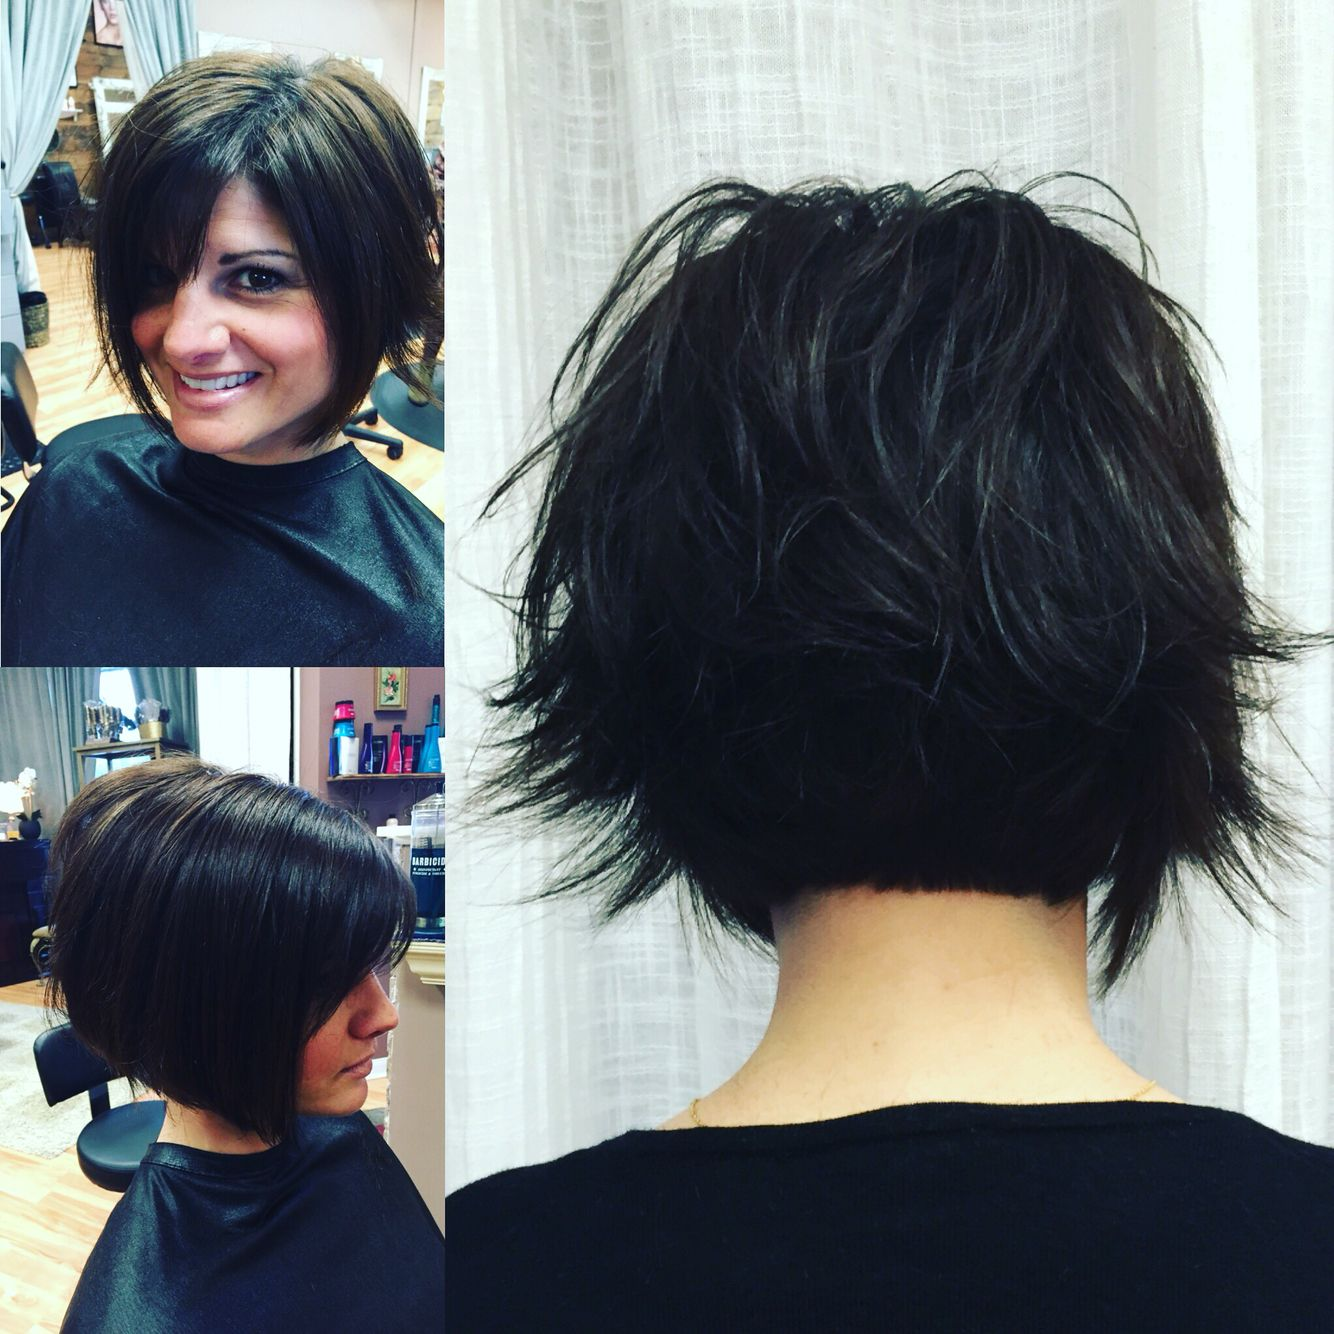 40 spectacular blunt bob hairstyles the right hairstyles - Short Haircut Razored Cut Short Sassy Haircut By Kimmyc7 Optonline Net